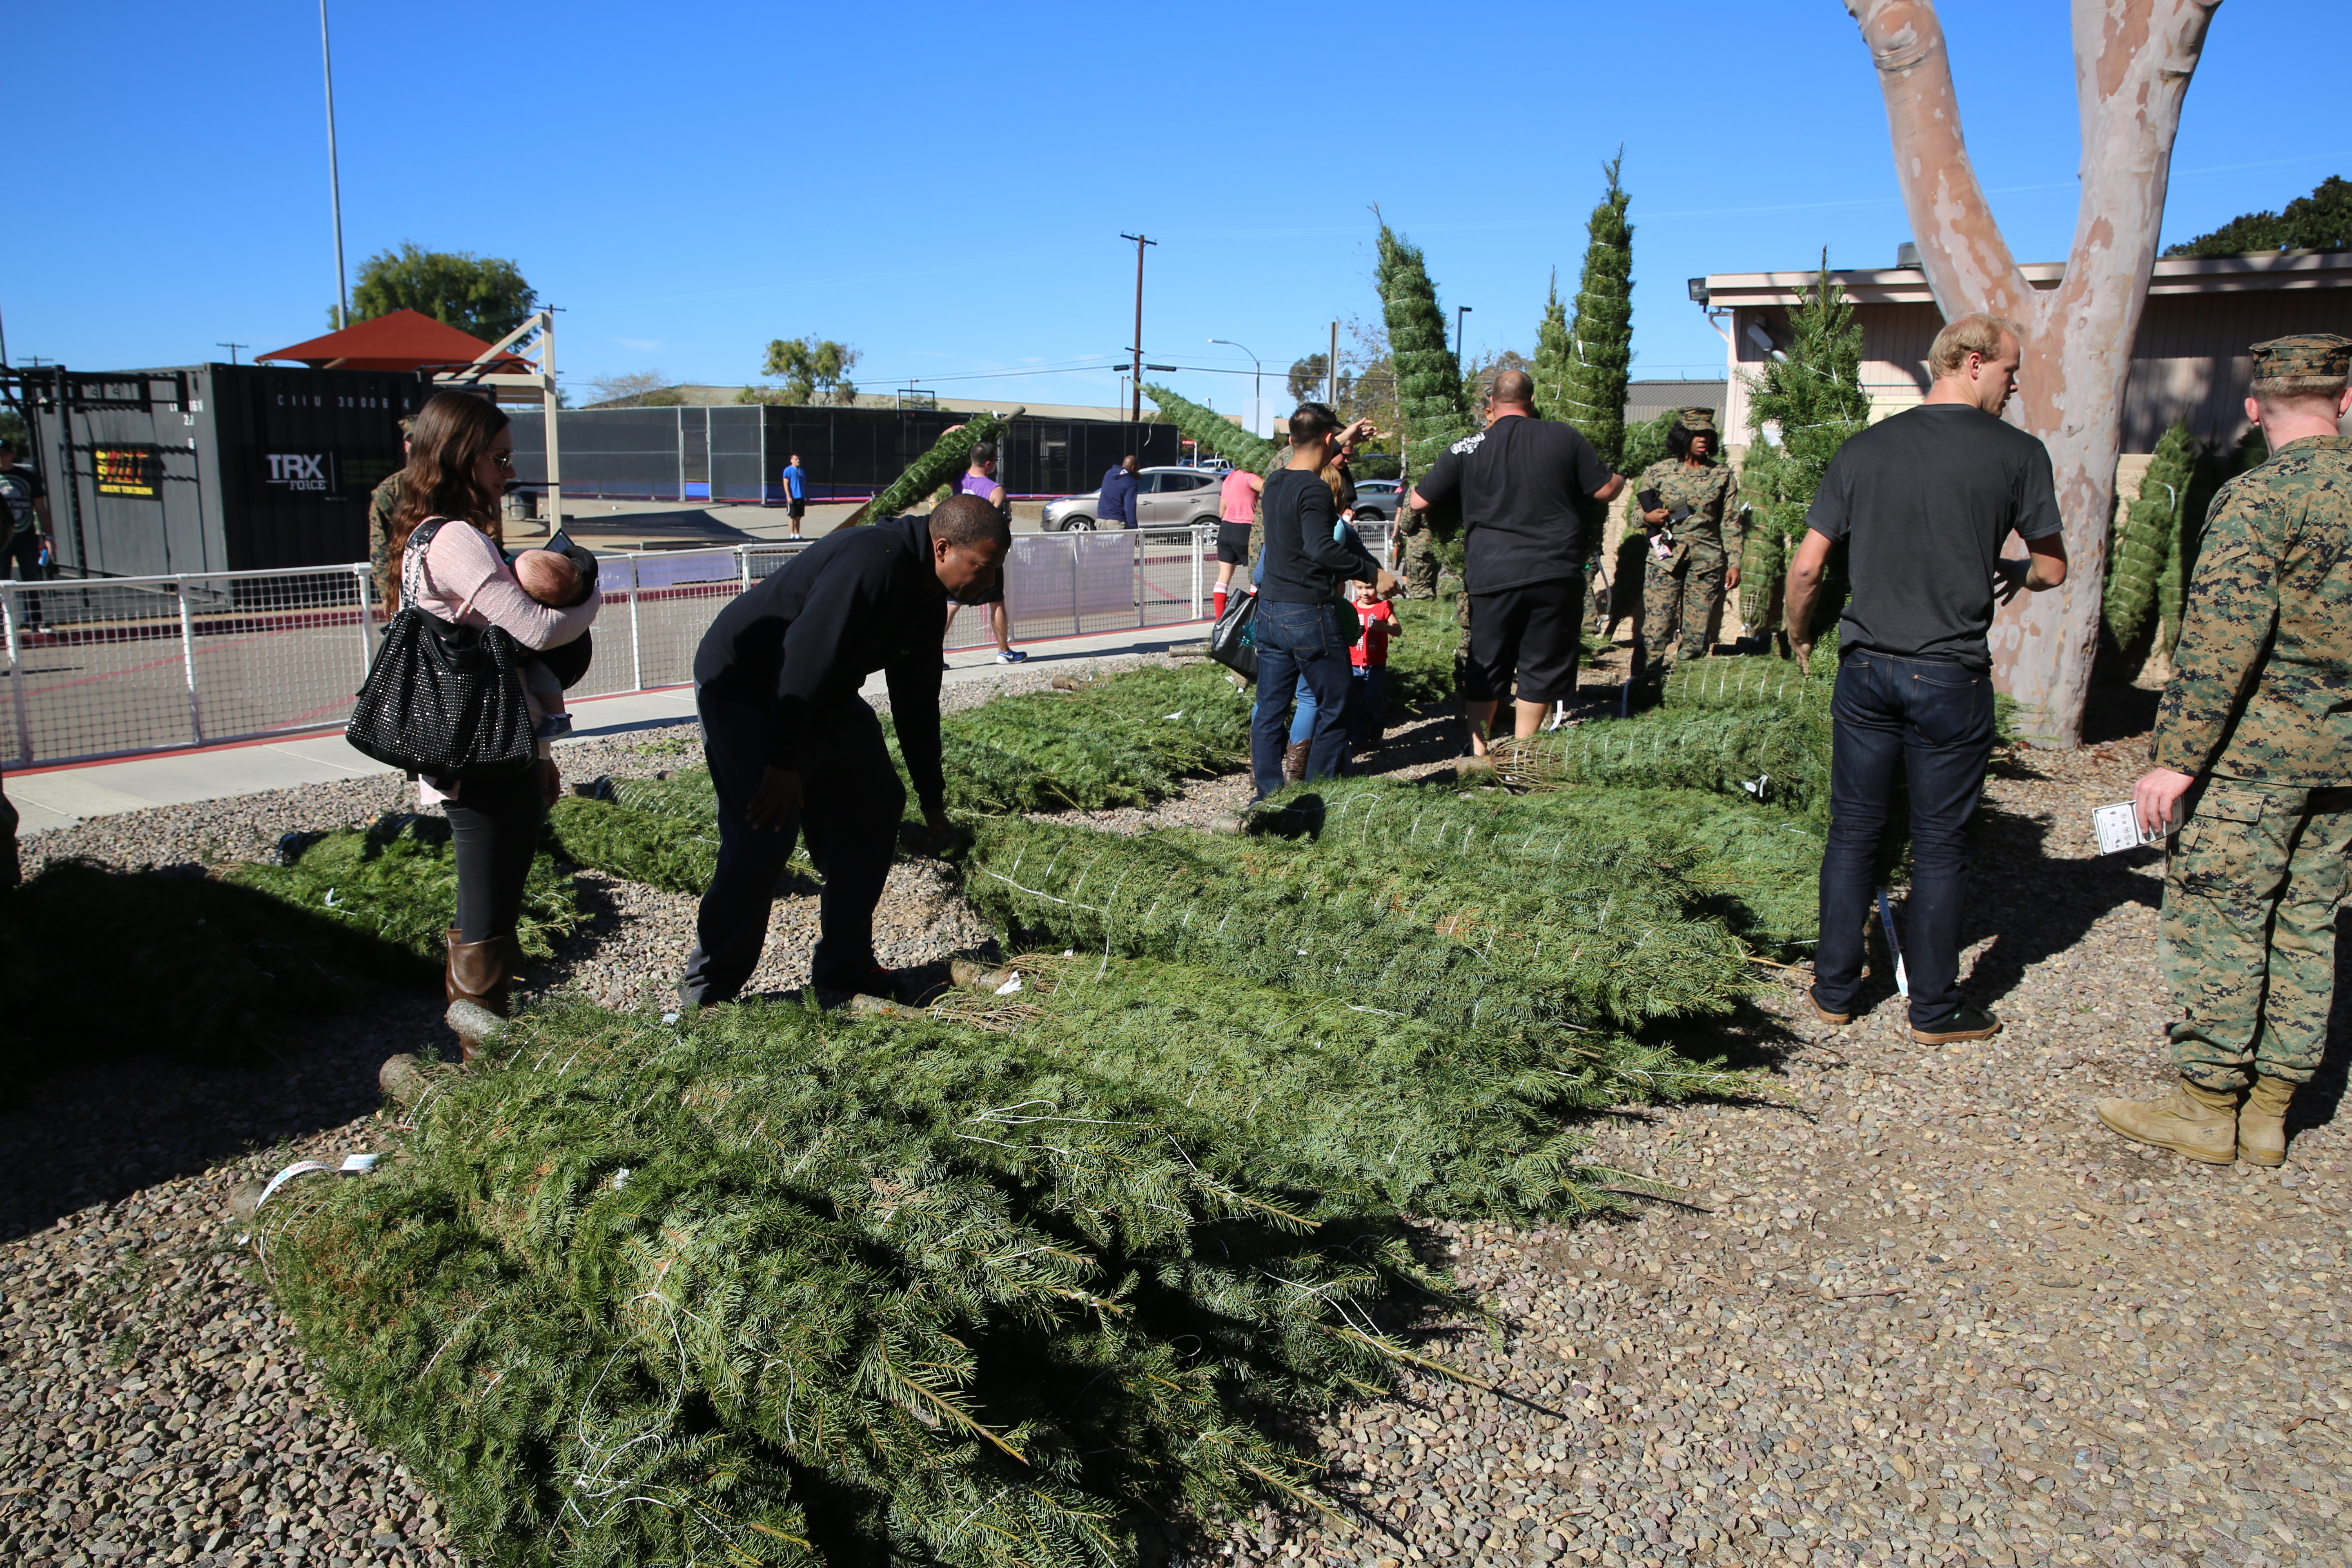 file tree giveaway spreads holiday cheer through mcas miramar 151202 rh commons wikimedia org